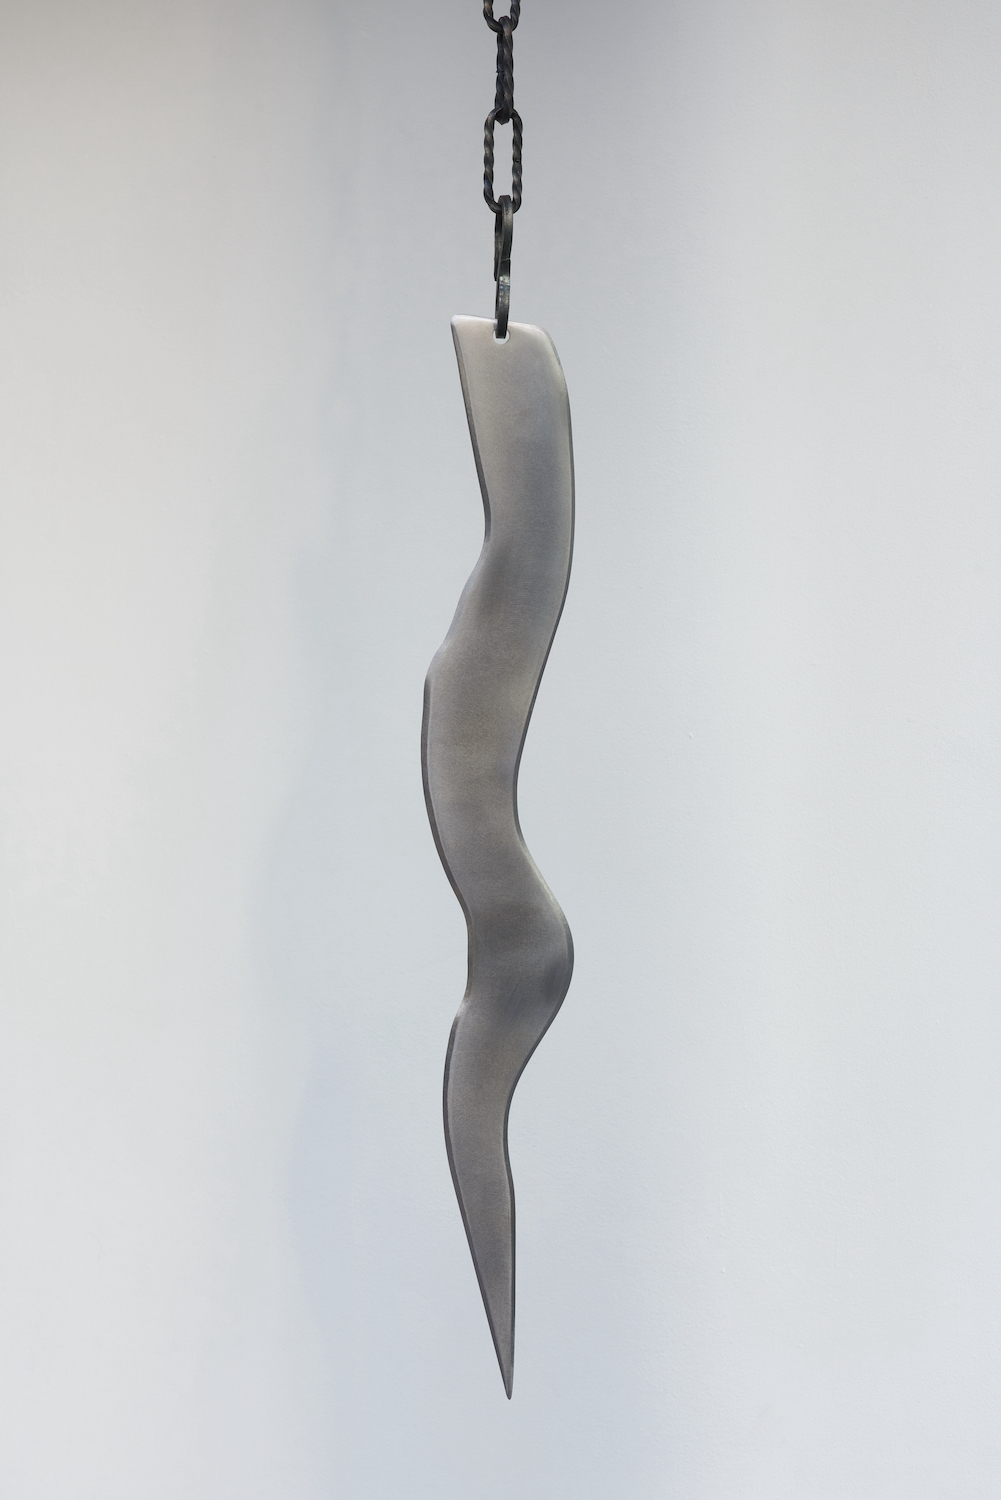 Tarek Lakhrissi, BETRAYING TIME AND SPACE, 2021. Steel and steel chains. 65 x 8 x 0.5 cm. Photographer: Jonathan Bassett.